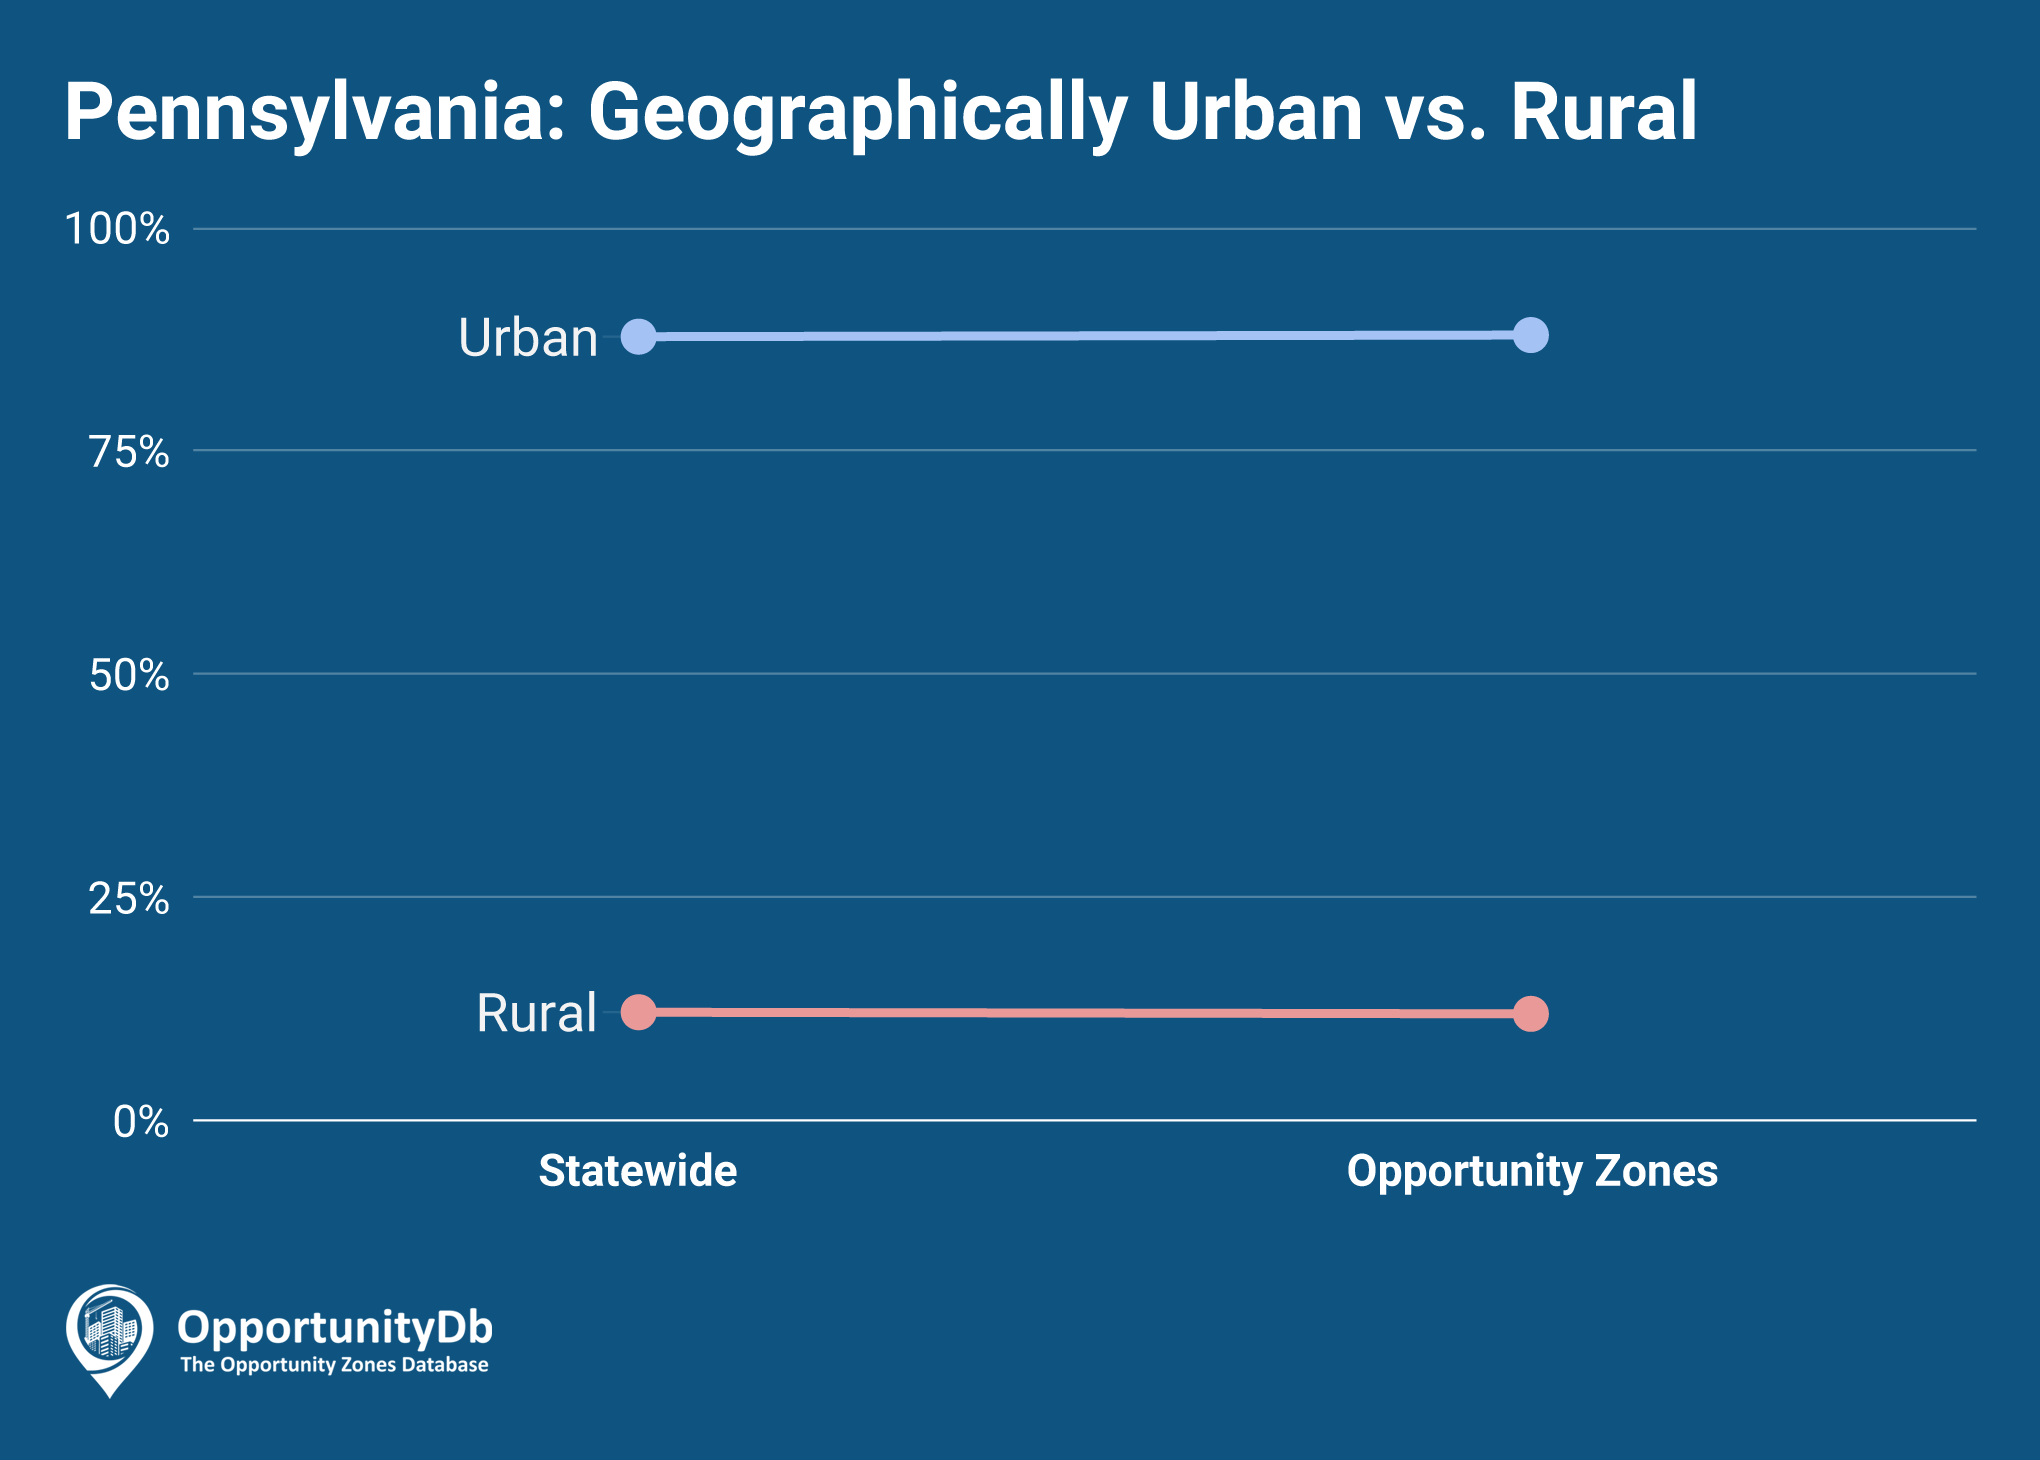 Urban vs. Rural in Pennsylvania Opportunity Zones